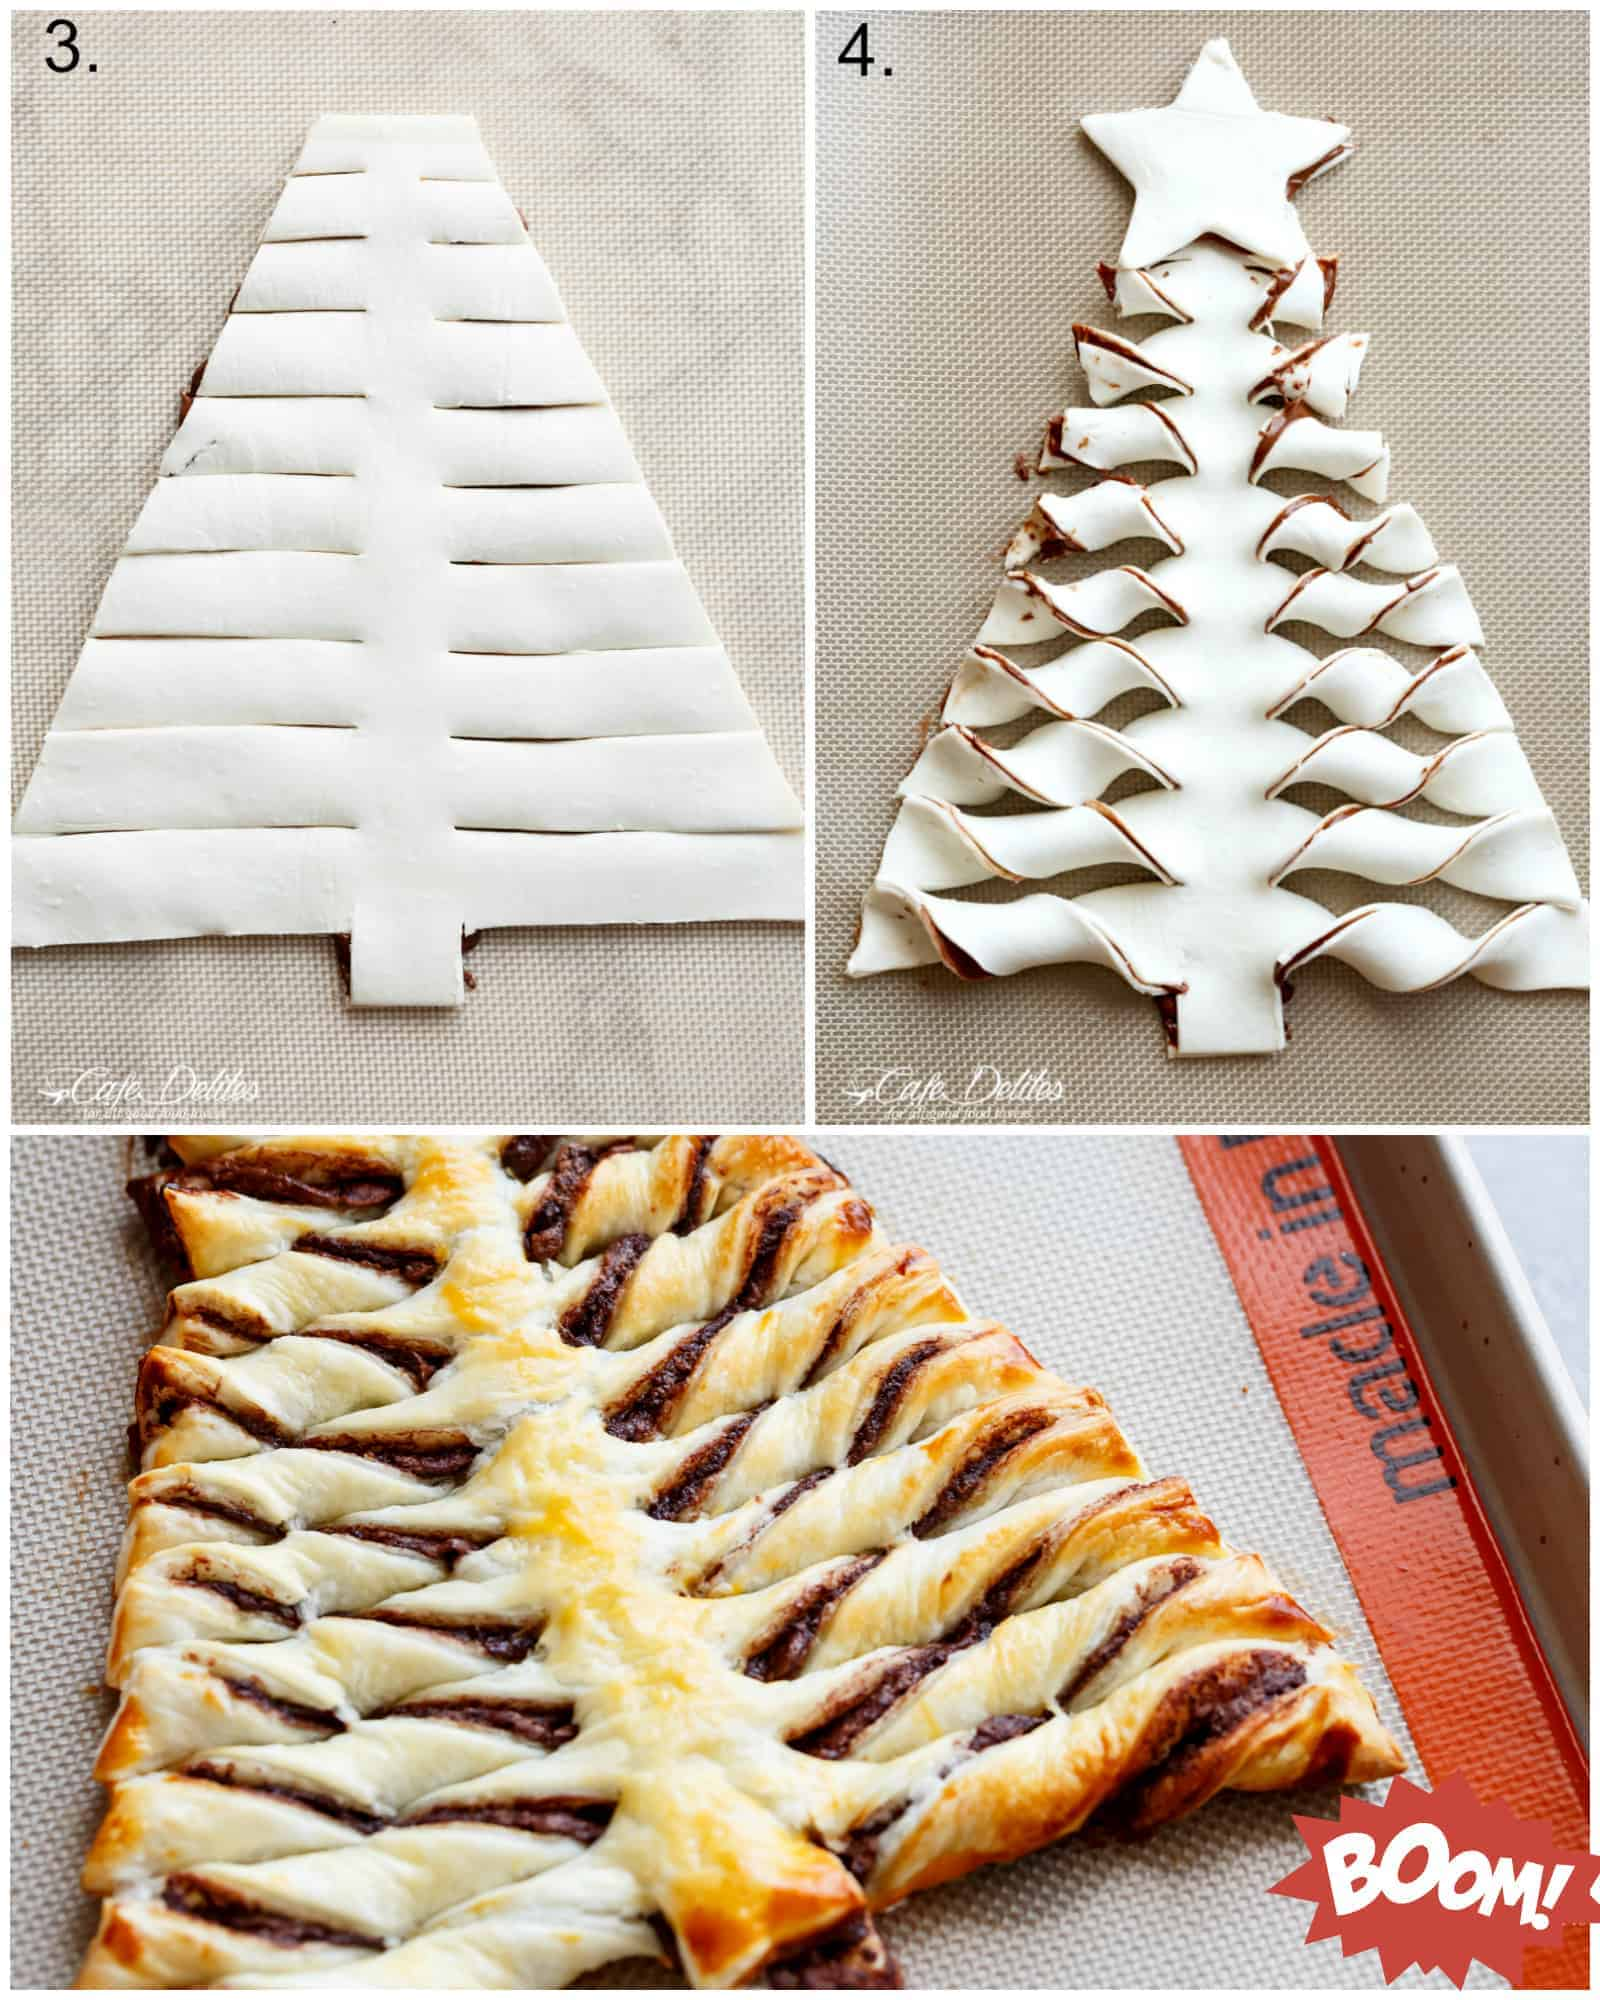 How To Make a Nutella Christmas Tree with Puff Pastry | cafedelites.com